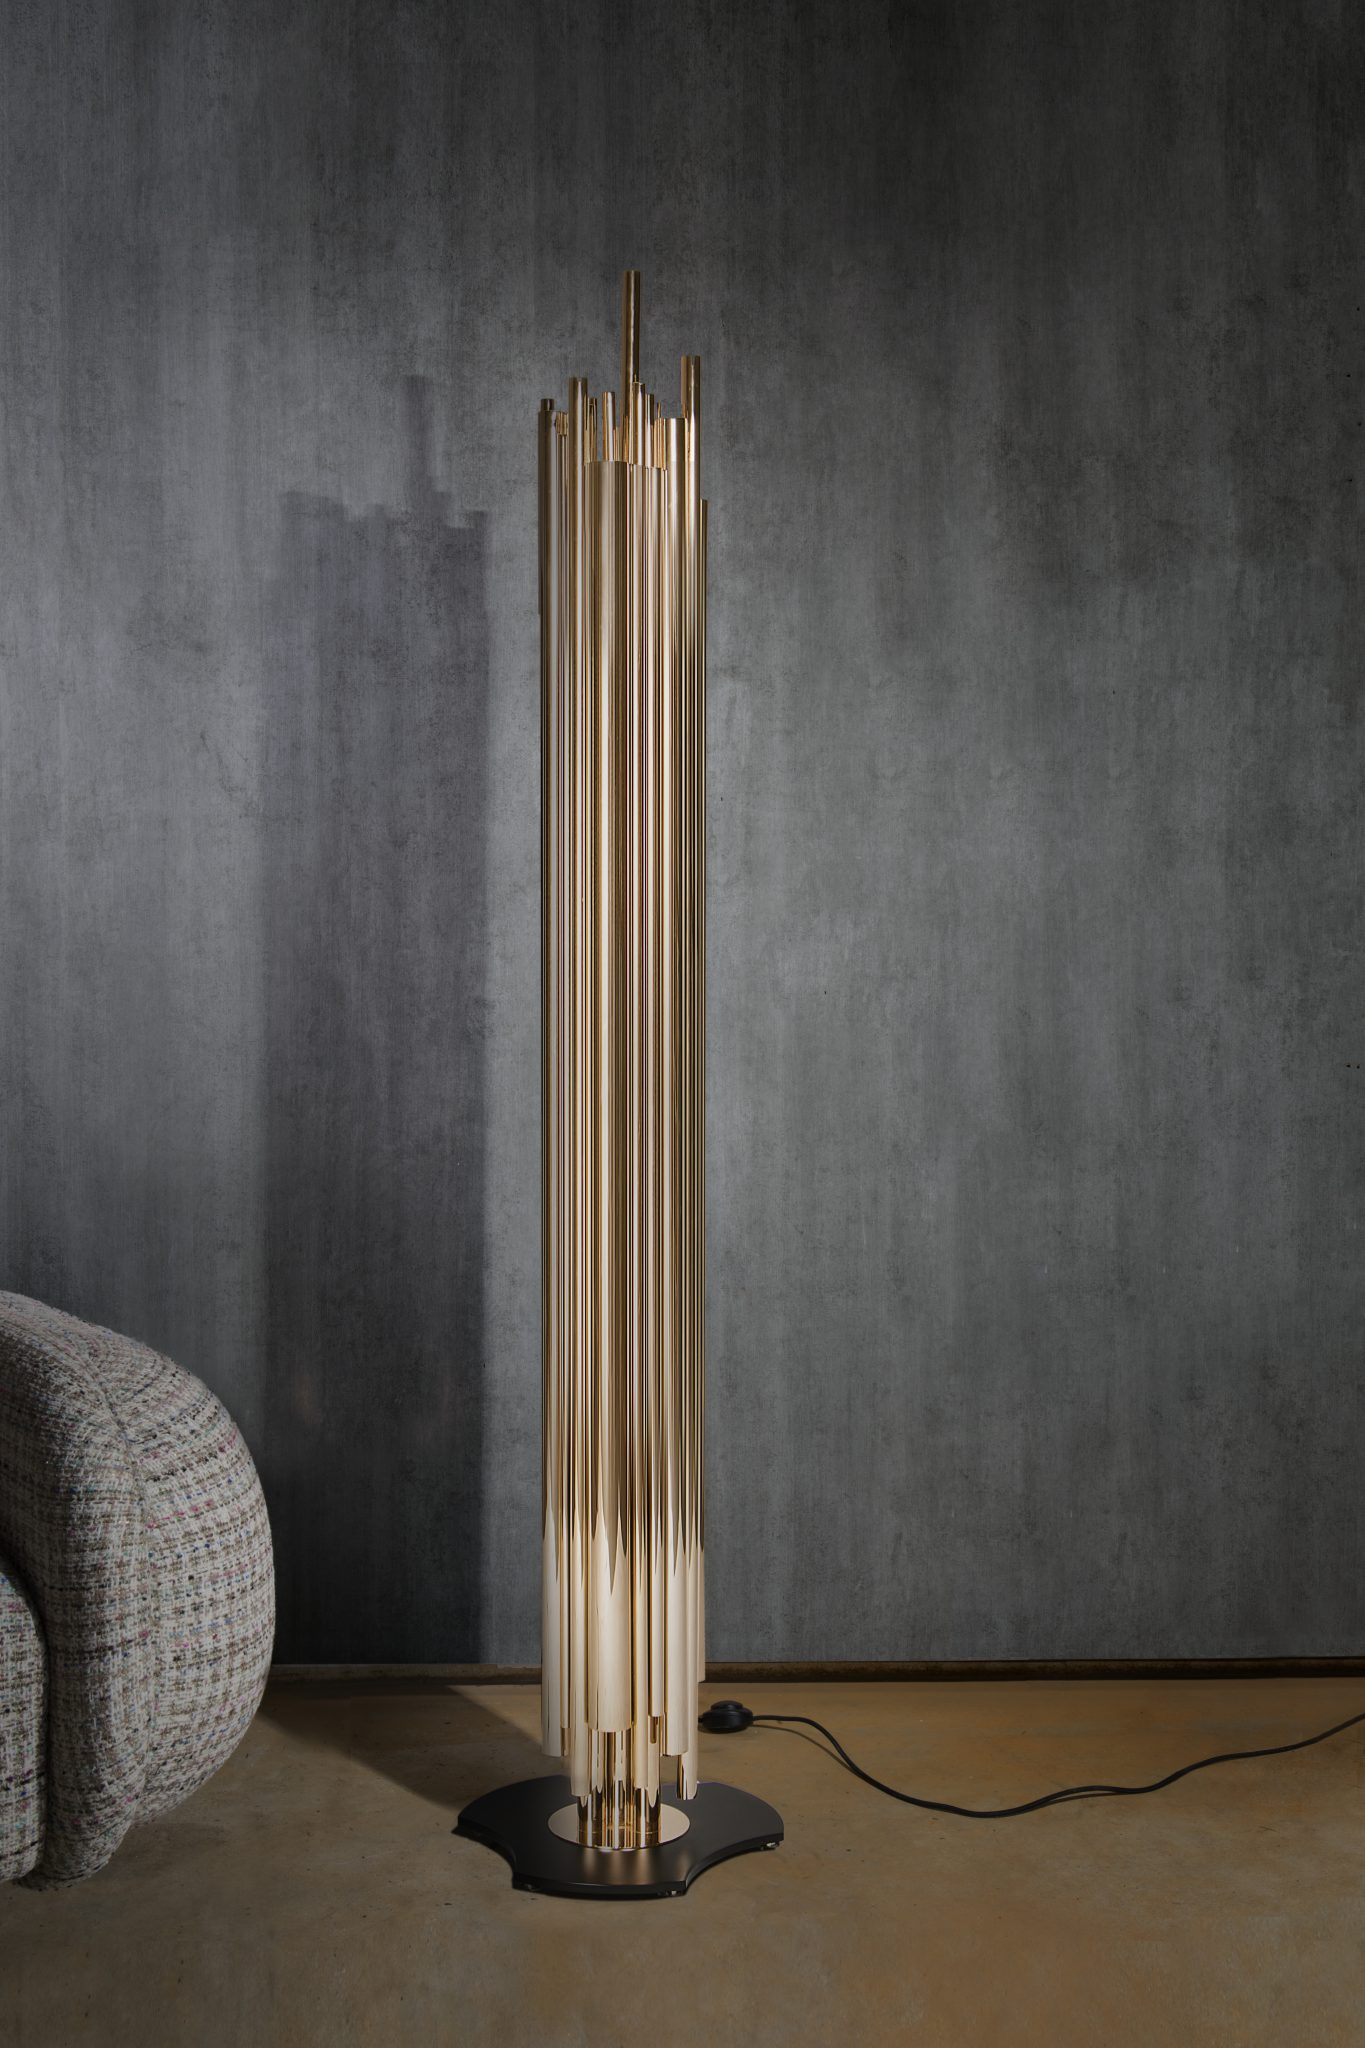 HIGHLIGHT YOUR ROOM WITH A CONTEMPORARY FLOOR LAMP LIKE THE BRUBECK